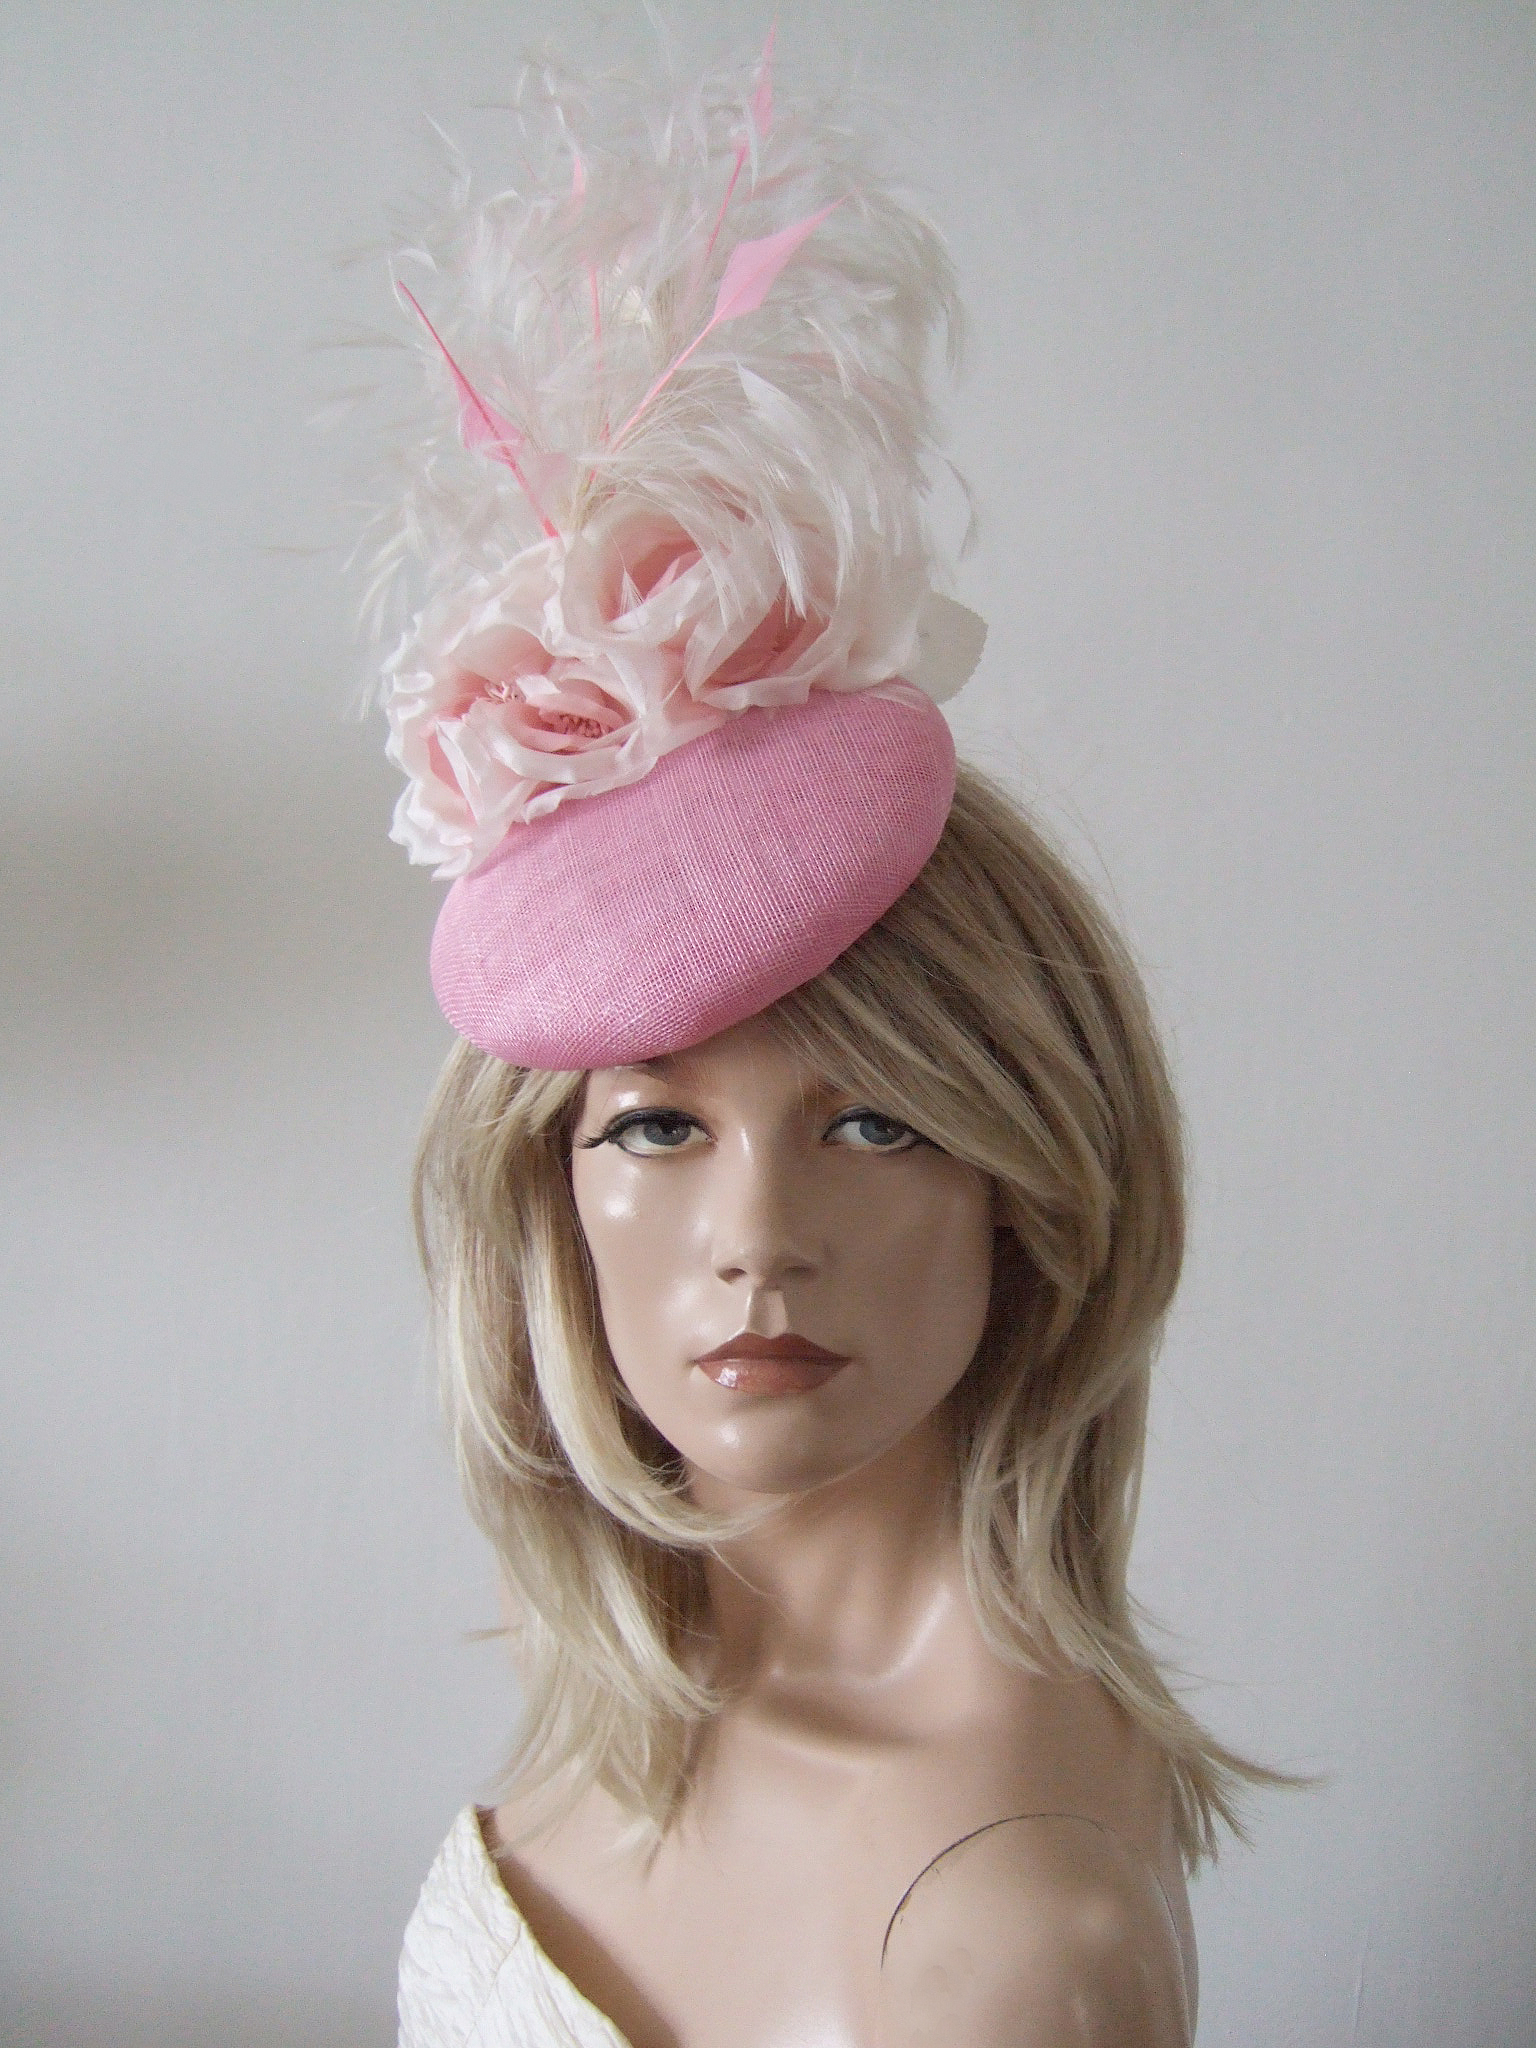 Pink Hats for Royal Ascot 2020. Royal Ascot Hat Rental 2020. Pink Floral Hats. Best Royal Ascot Hats 2020. Pink Hats for Hire 2020. Hire Hats for the Grand National. Royal Ascot Hat Rental. Hats to wear with a Pink dress. Formal Wedding Hats for Hire UK 2020. Amazing Hats for the Races 2020.